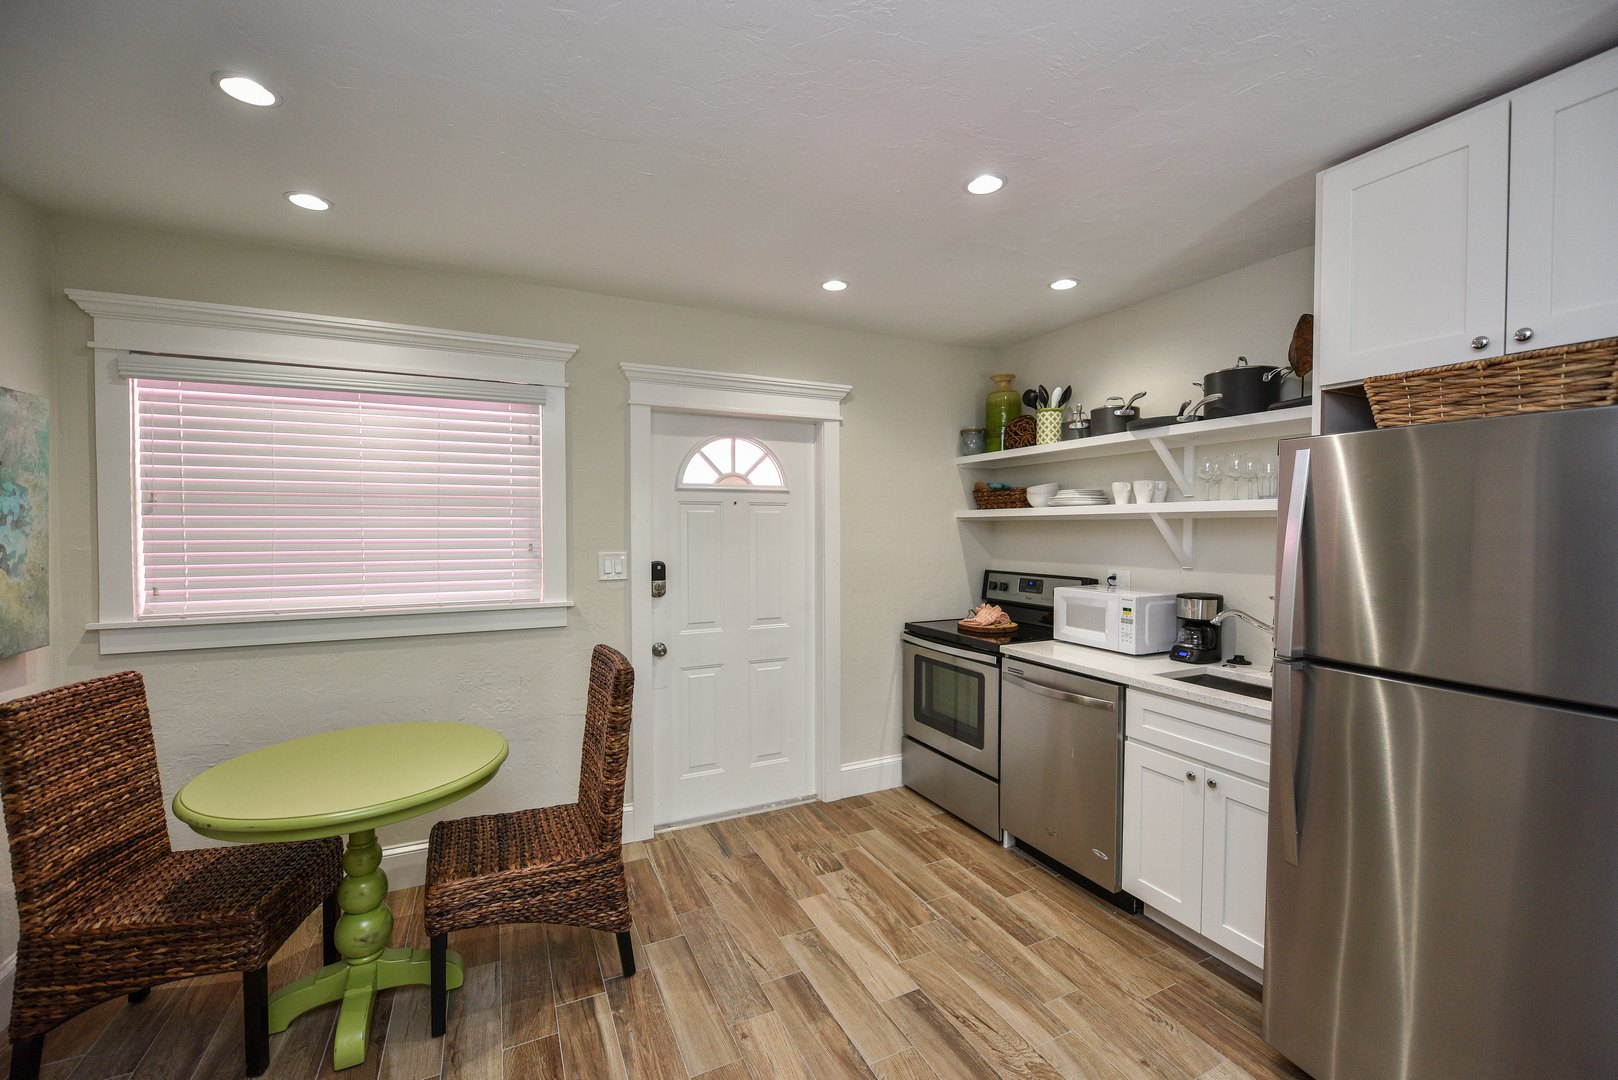 Eat In Kitchen Area with a Full Kitchen for Your Stay